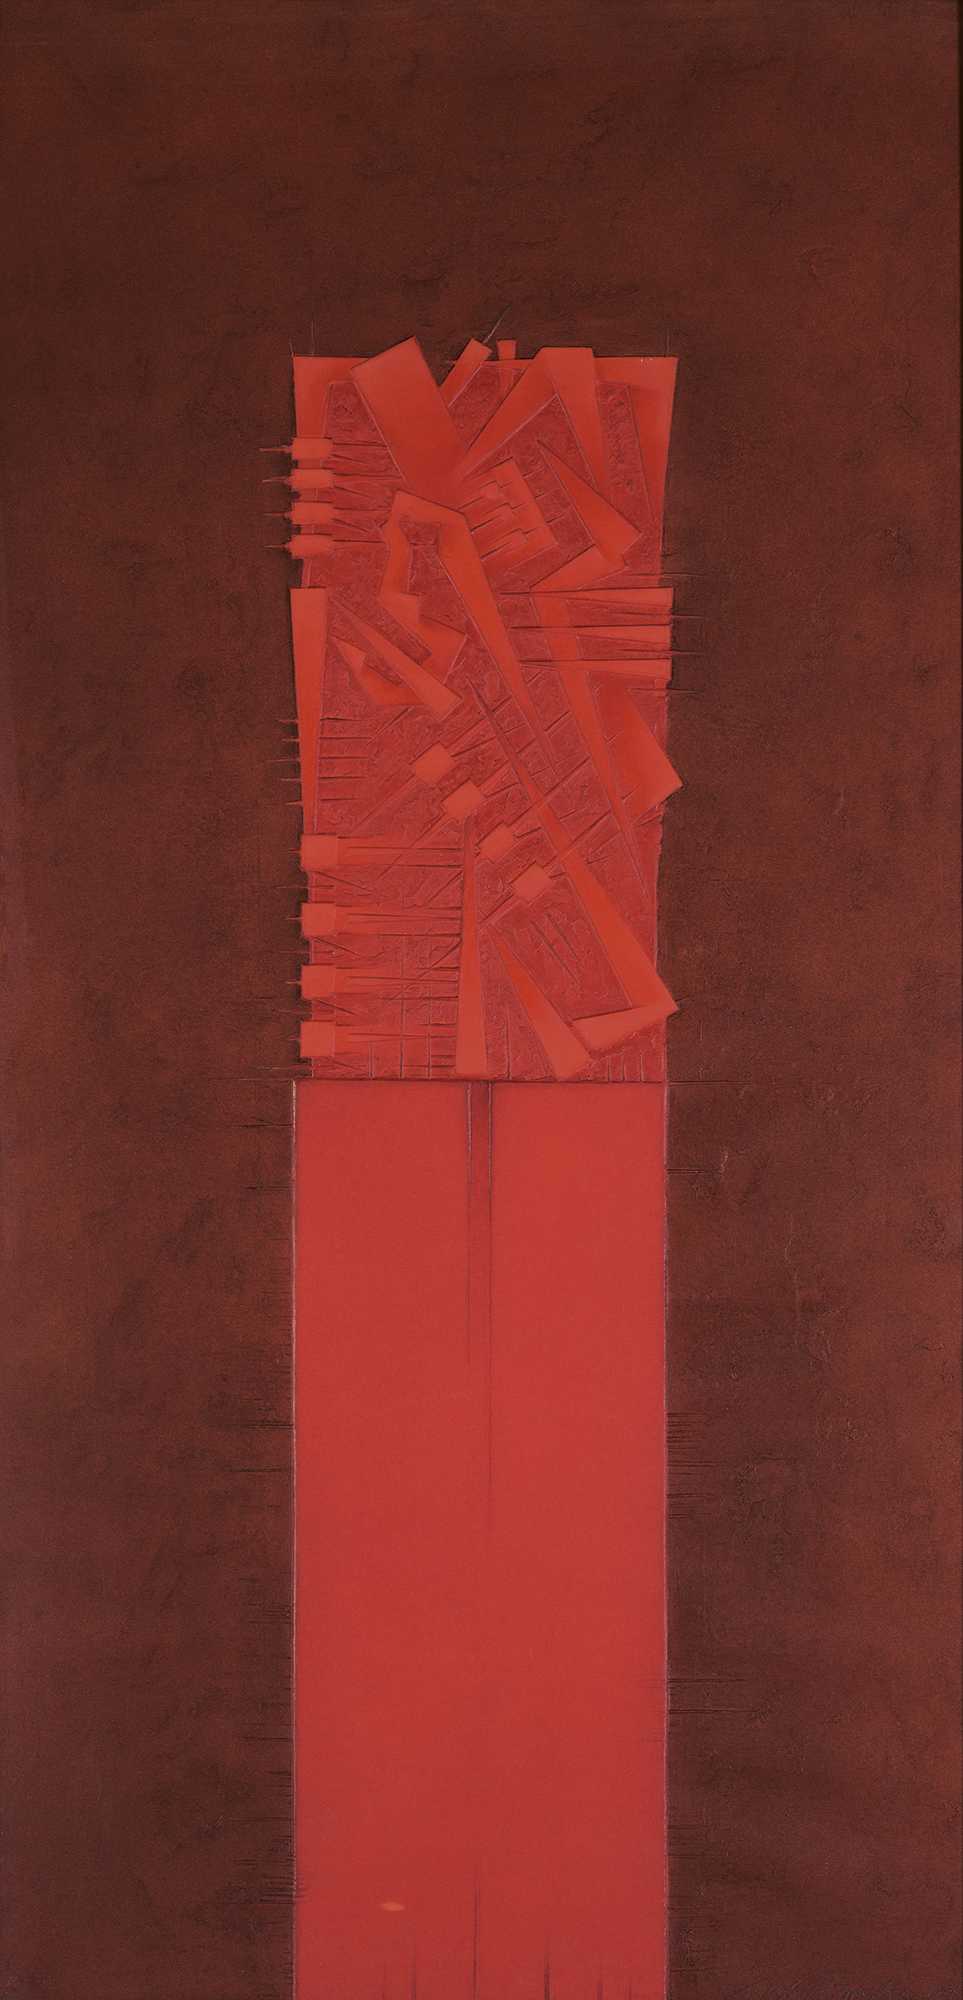 Stele IV (rosso), 1999